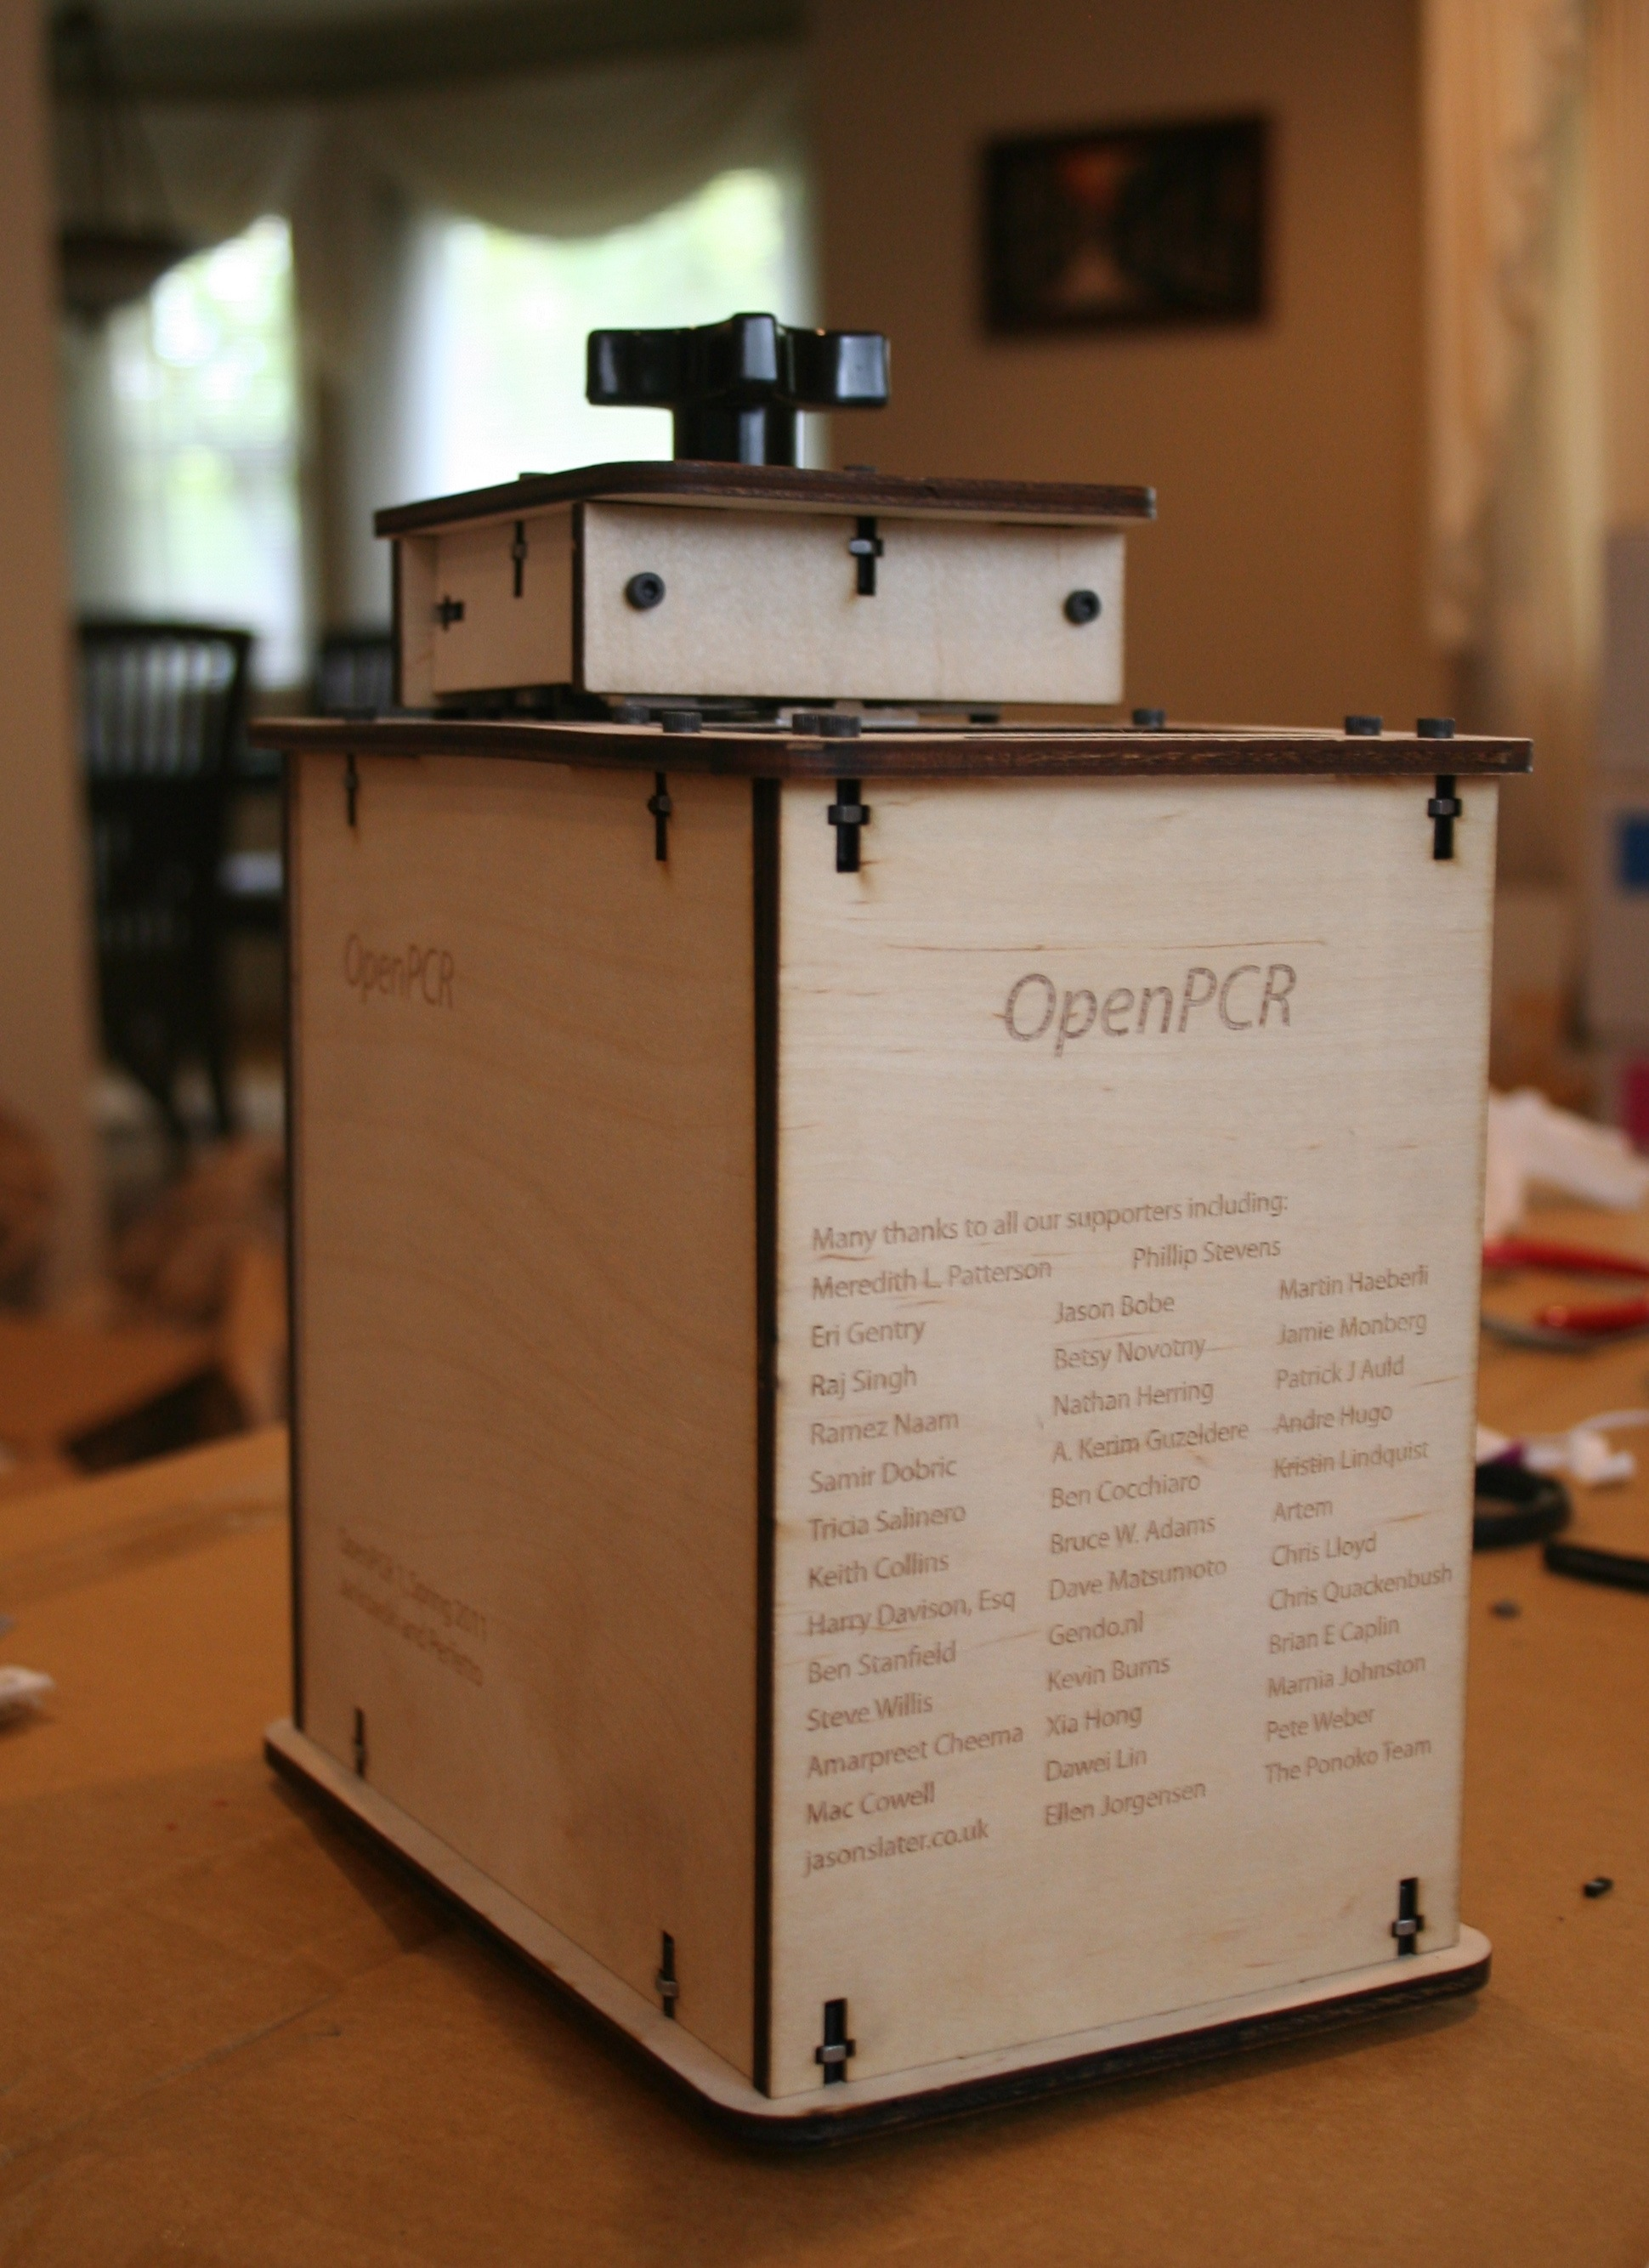 Openpcr open source hackable personal pcr machine dna dna is now diy openpcr ships worldwide openpcr pcr machine thermal cycler solutioingenieria Image collections